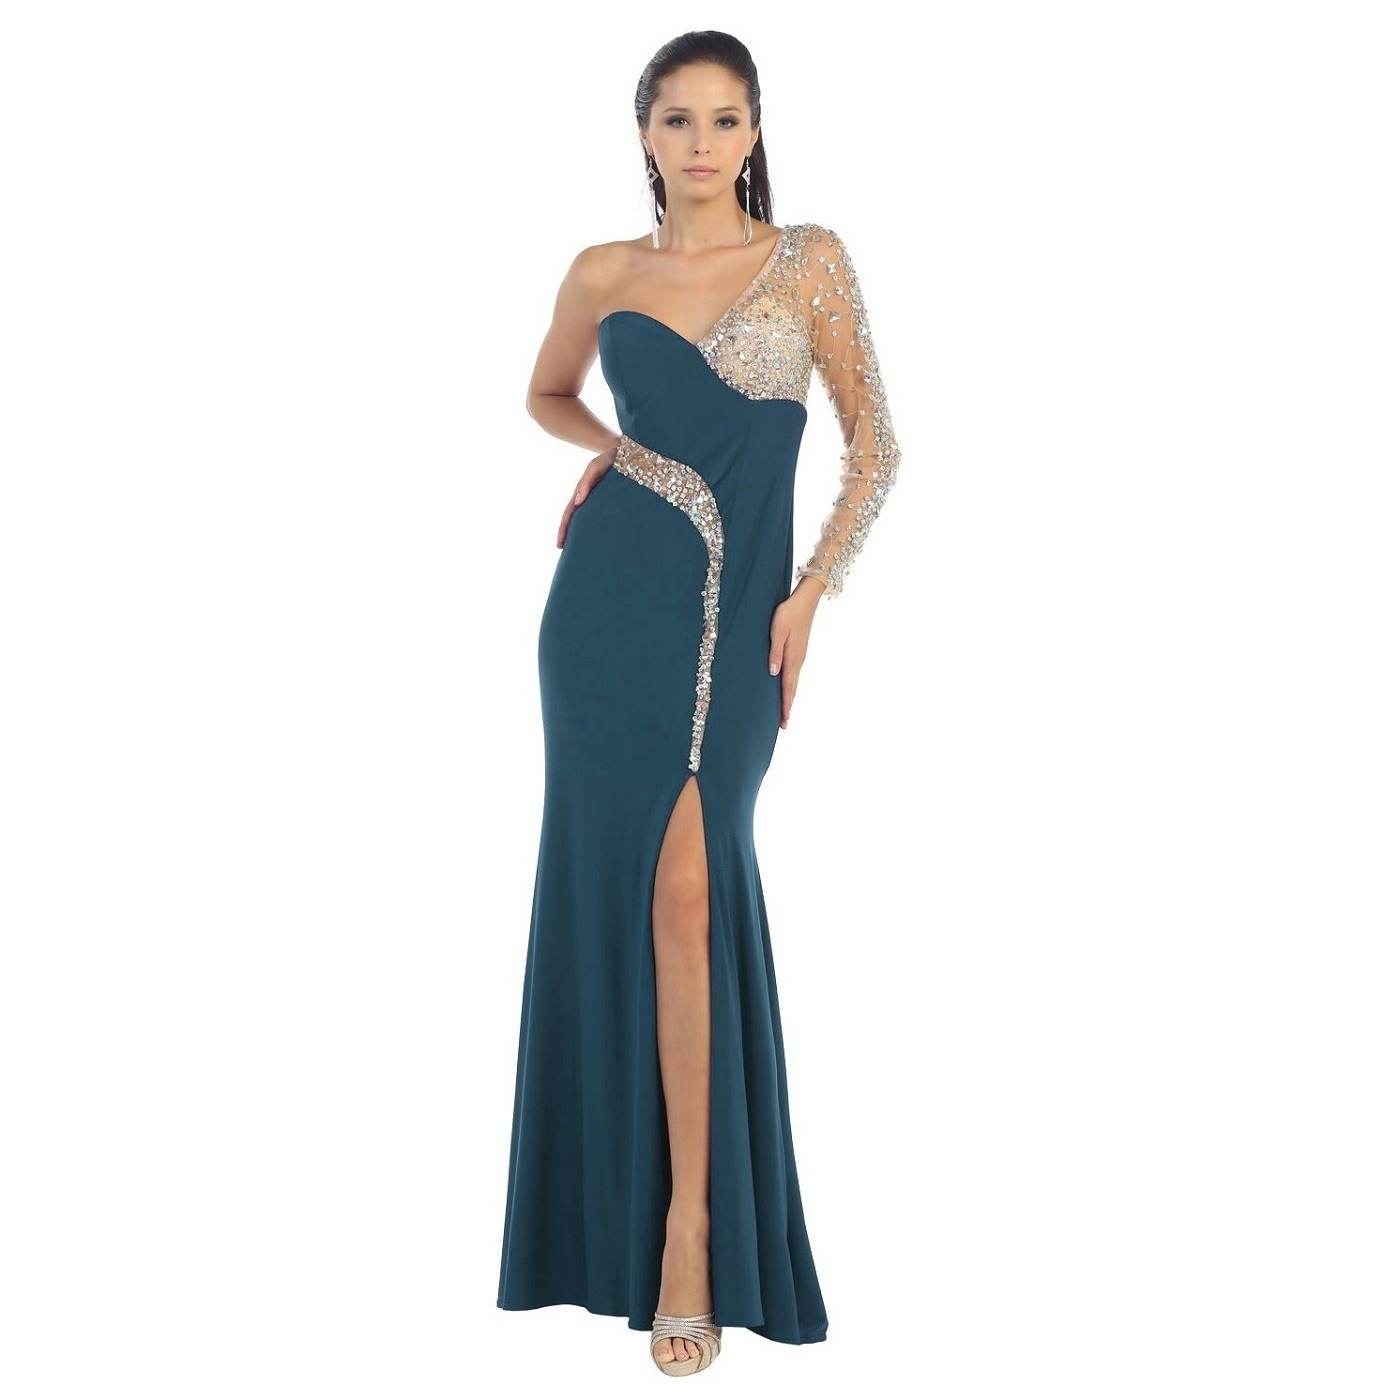 15 Top Abiball Kleid ÄrmelDesigner Top Abiball Kleid Bester Preis